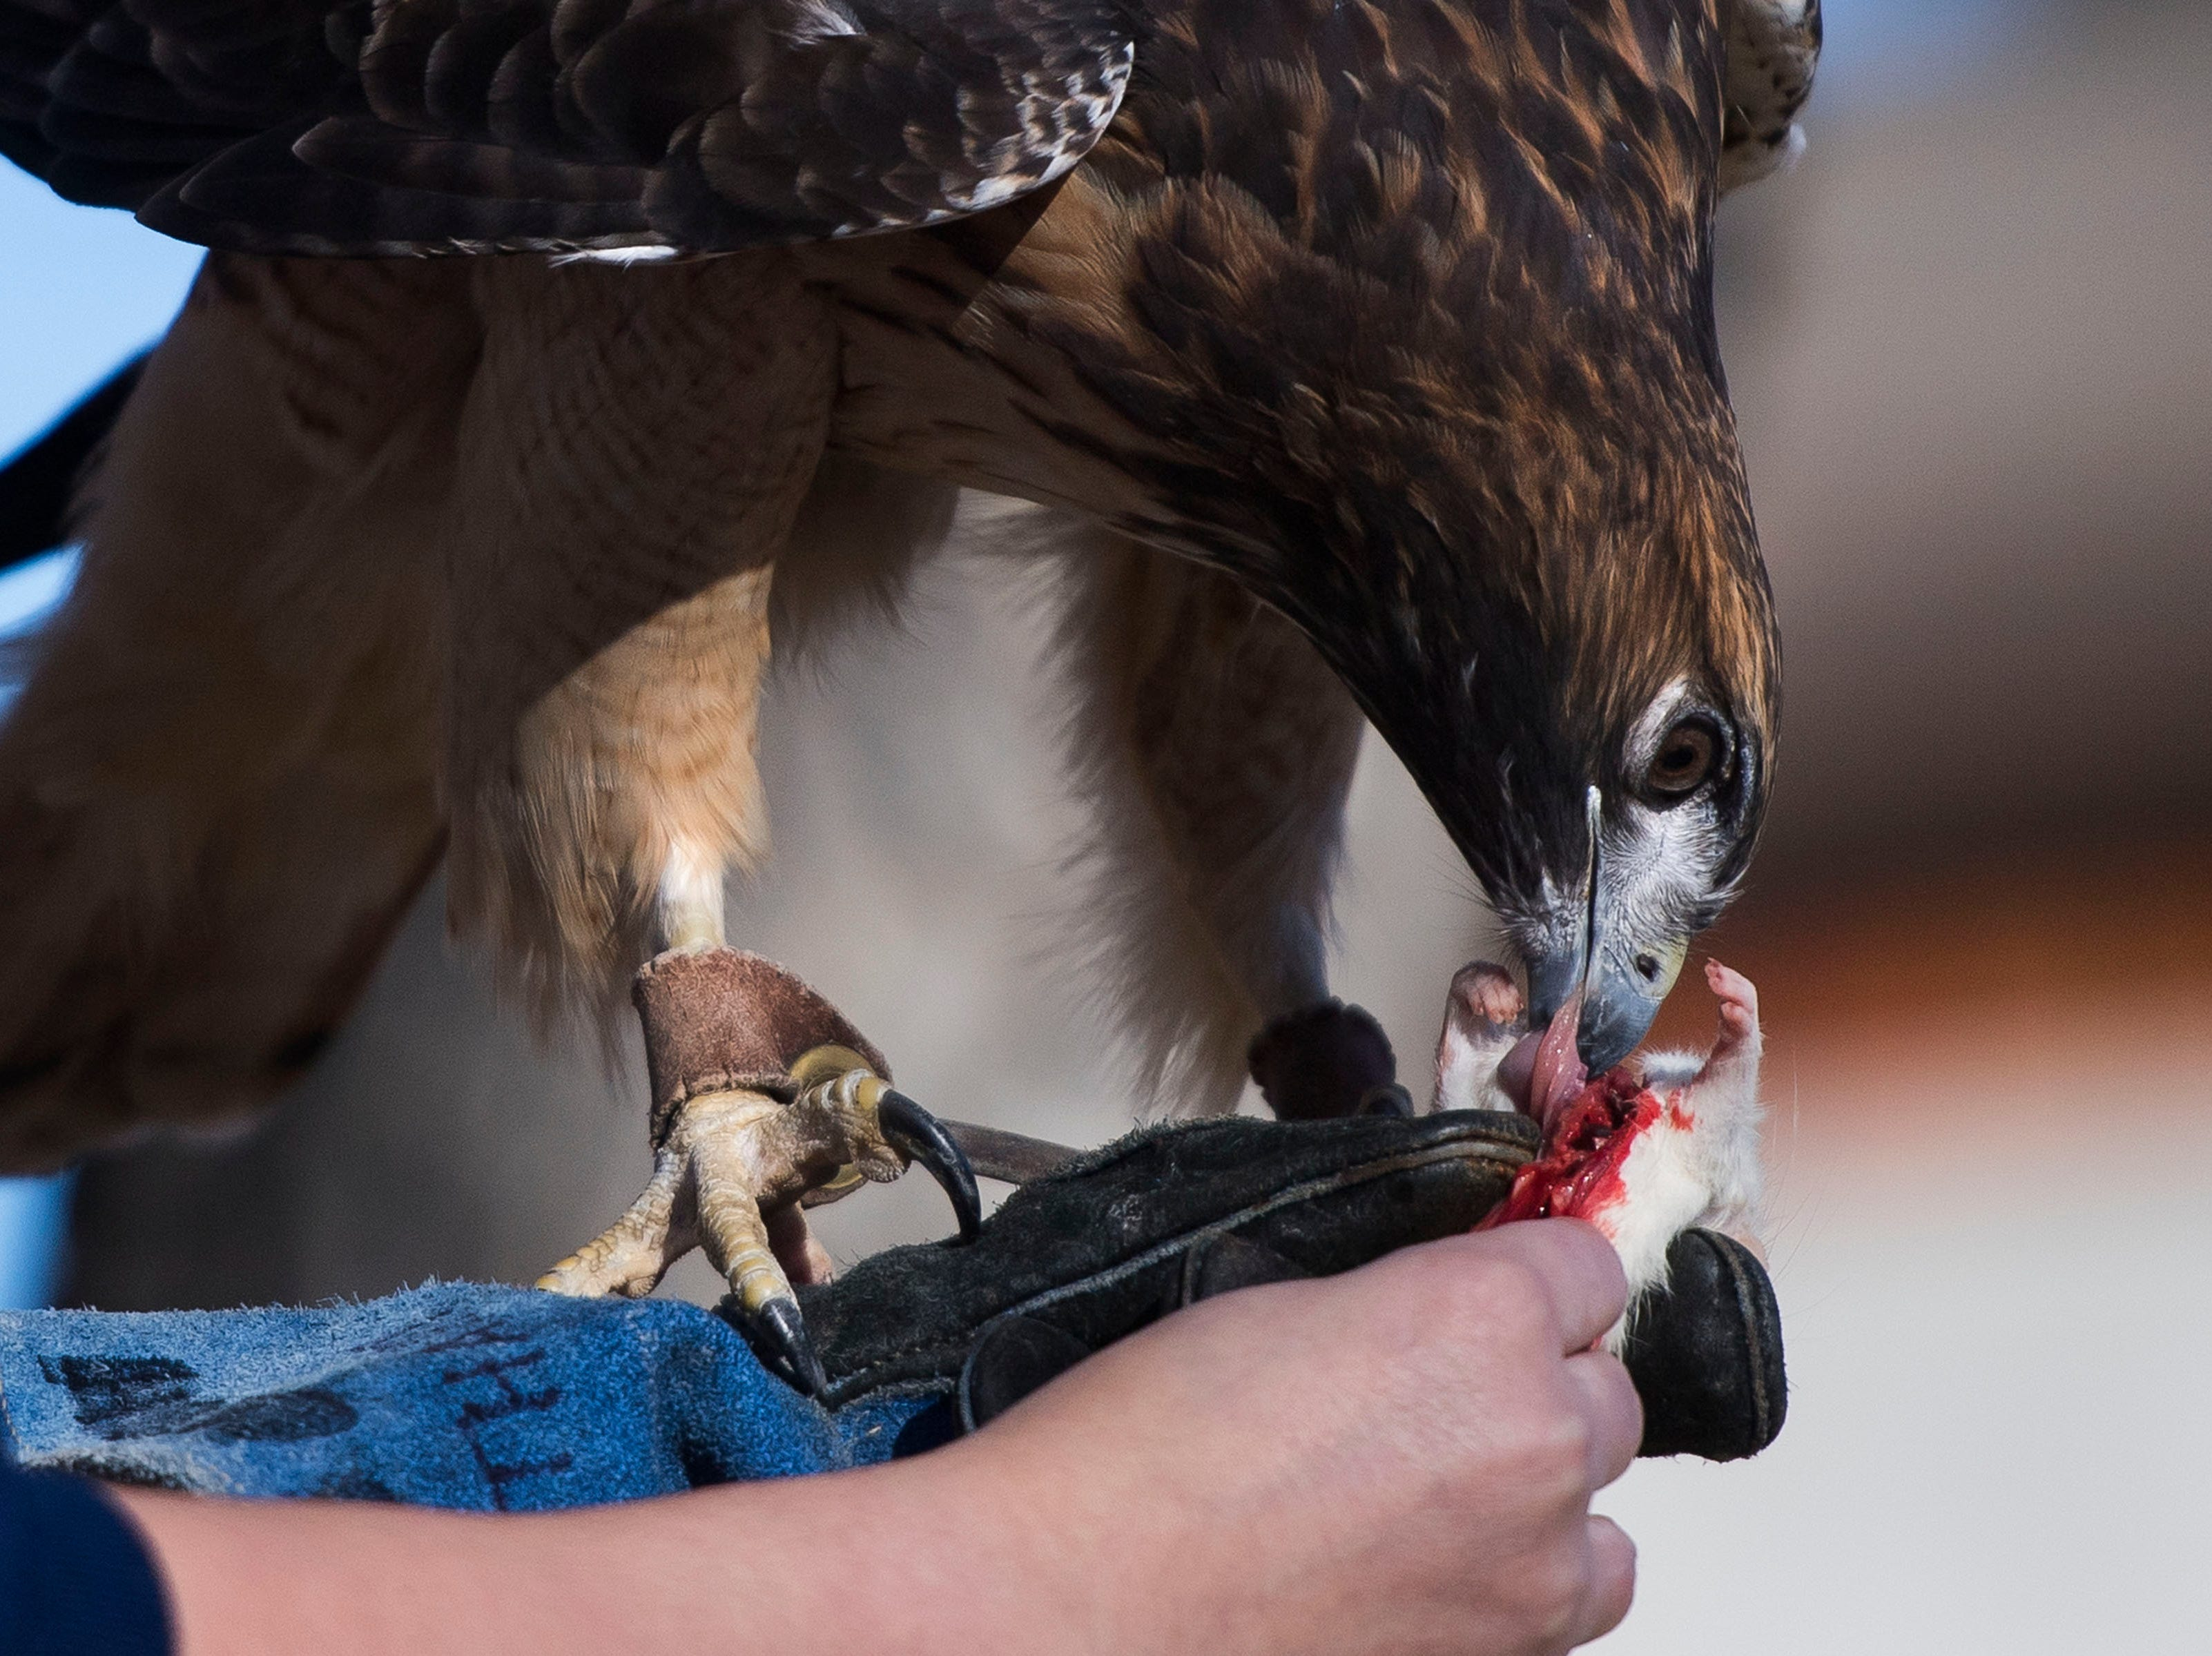 Handler Dominique Thigpen feeds an educational red-tailed hawk on Friday, Feb. 1, 2019, at the Rocky Mountain Raptor Program in Fort Collins, Colo.